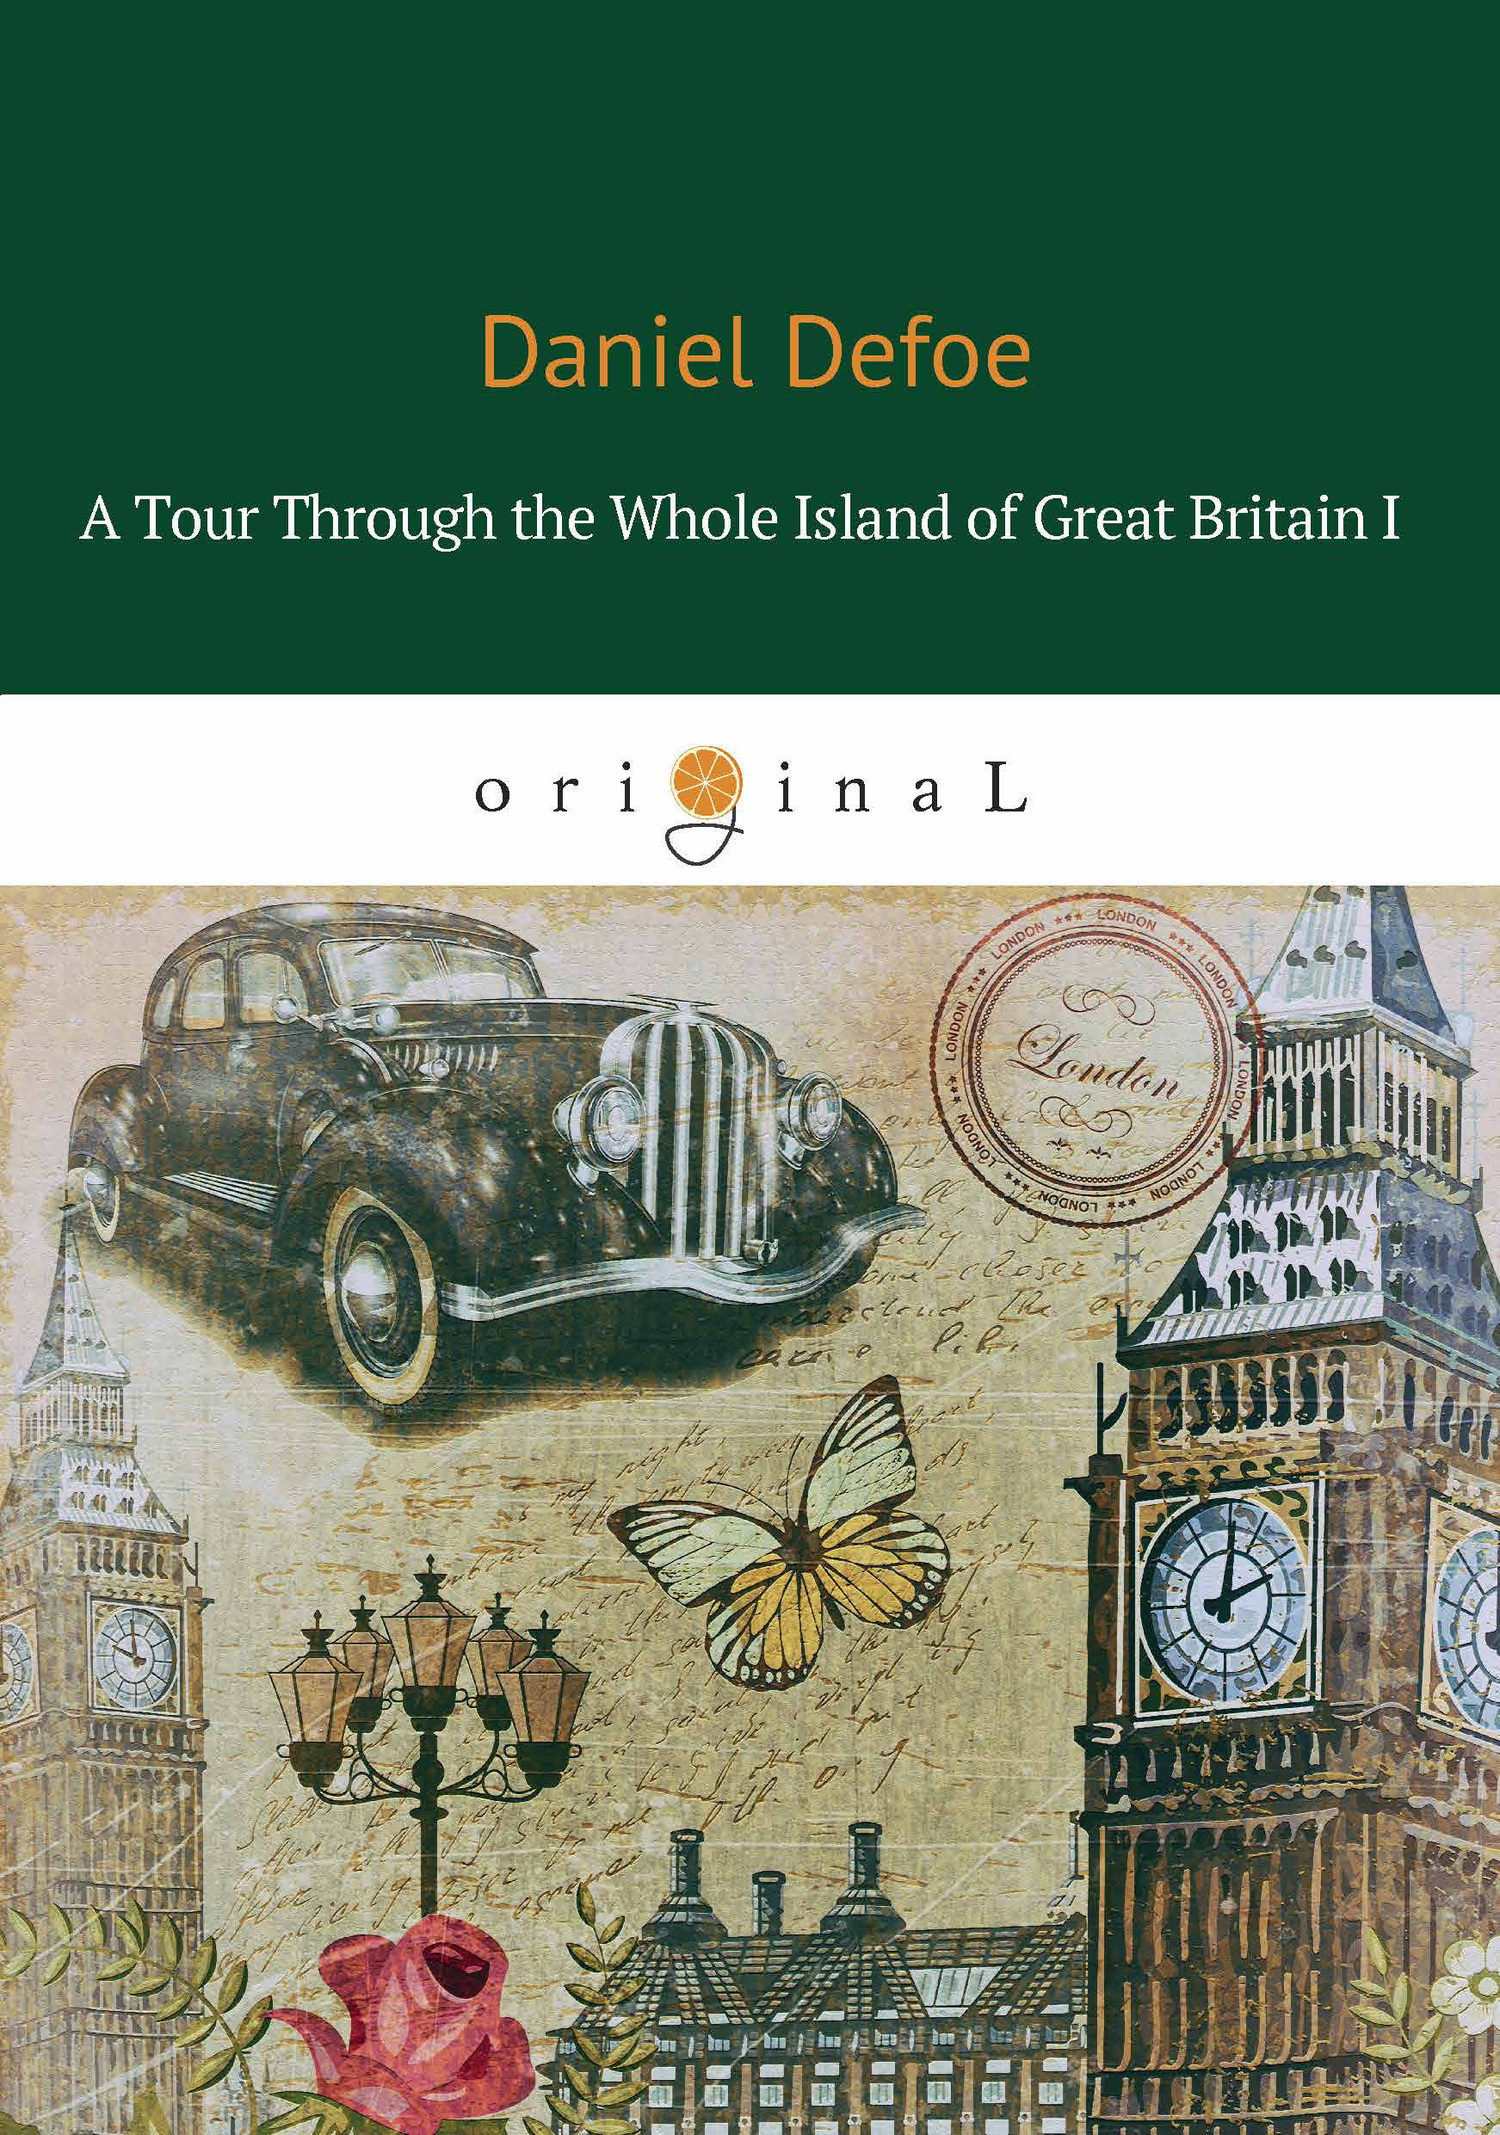 Даниэль Дефо A Tour Through the Whole Island of Great Britain I ISBN: 978-5-521-06816-6 doug lemov the writing revolution a guide to advancing thinking through writing in all subjects and grades isbn 9781119364948